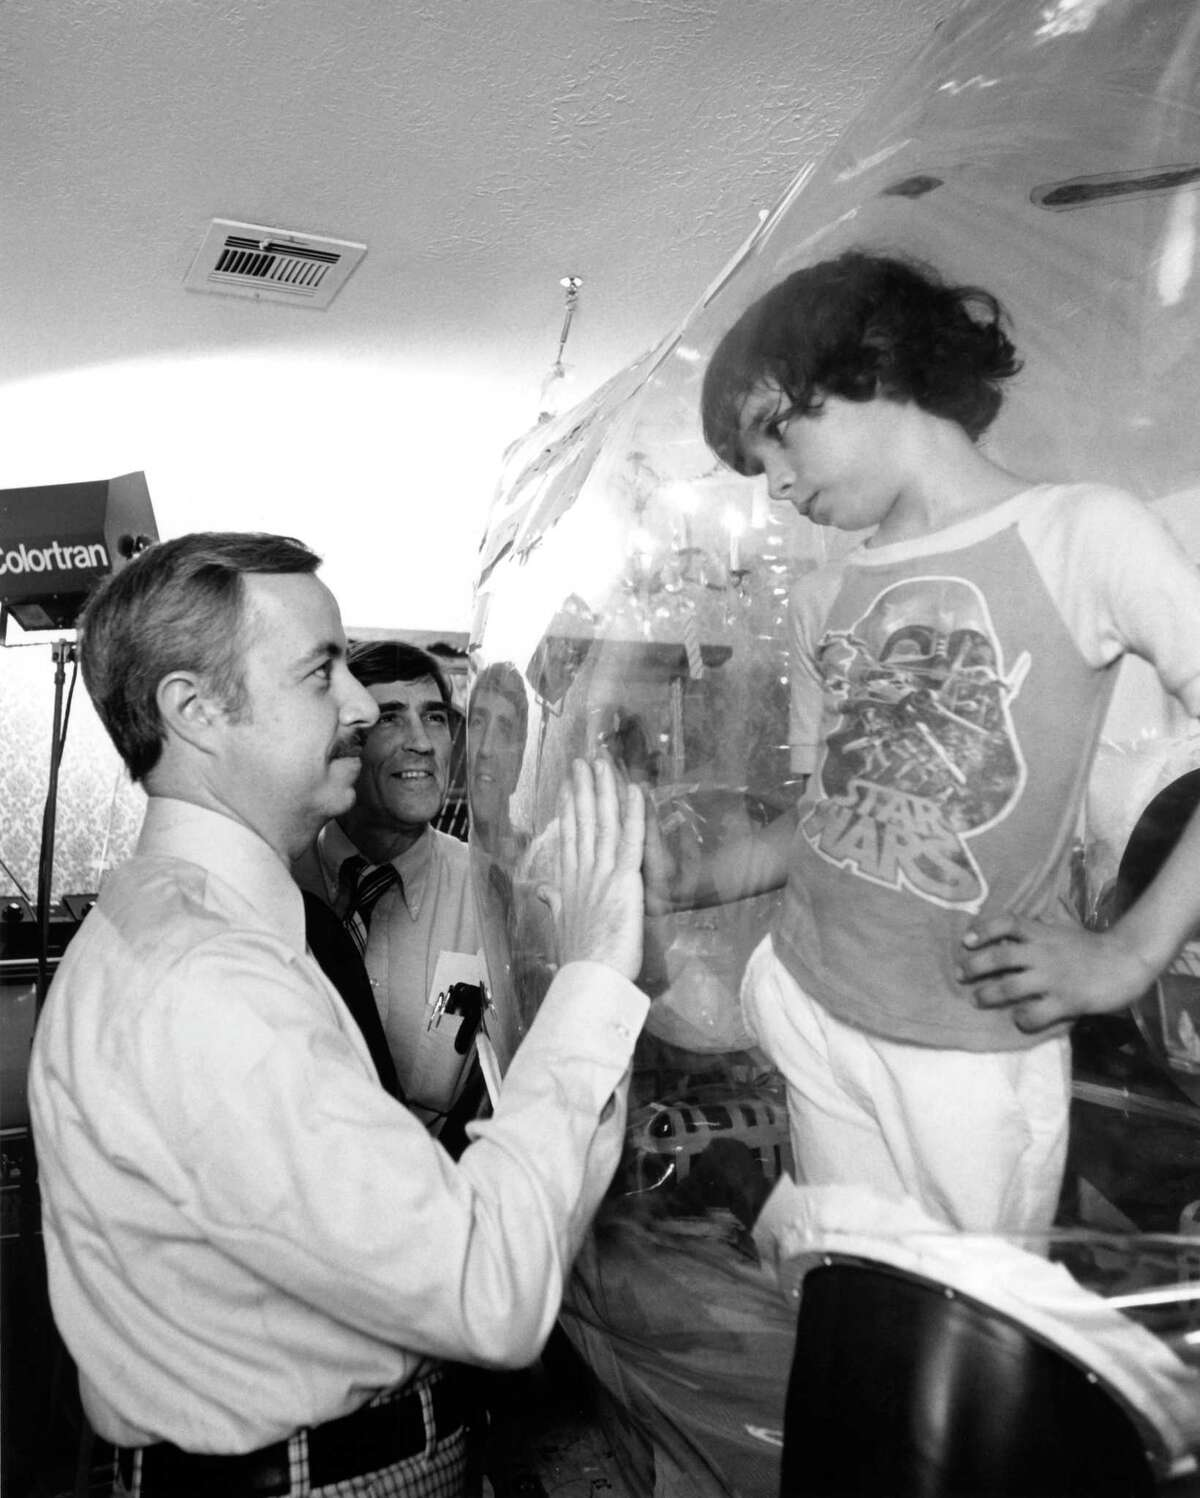 """Dr. William Shearer visits with his patient, """"Bubble Boy"""" David Vetter, at Texas Children's Hospital in 1979. David died in 1984 at age 12."""